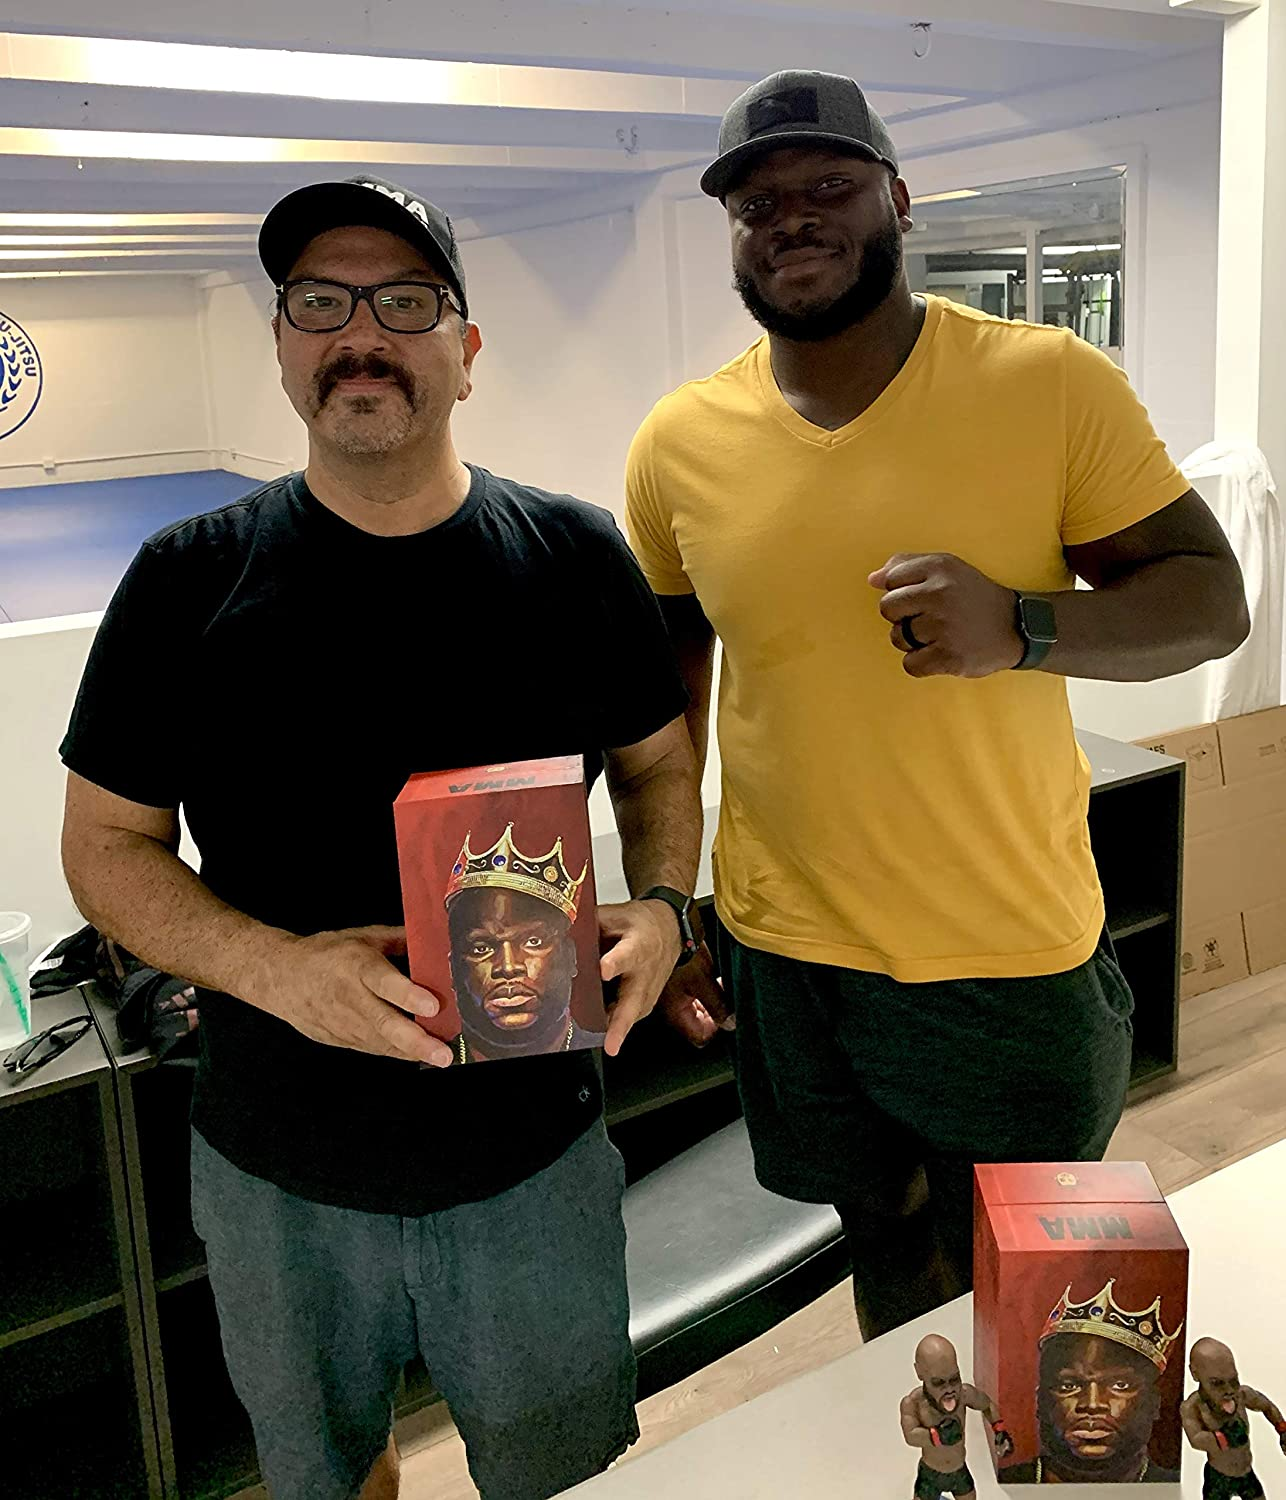 MMA UFC Action Figures Fight Night Sports Memorabilia UFC Bobblehead Derrick Lewis Limited Hand Painted Numbered Limited Handmade